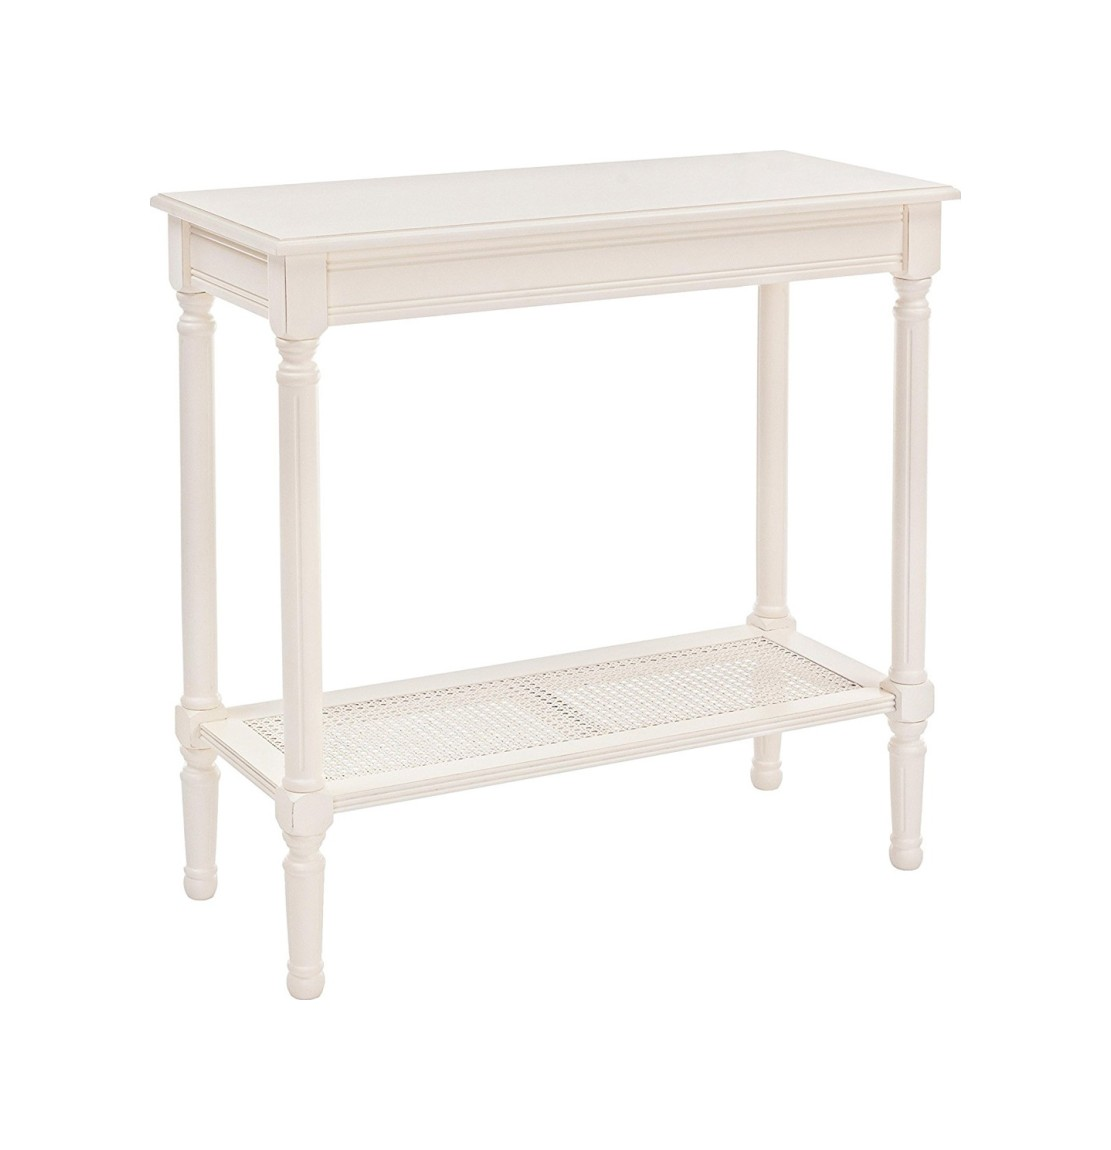 Photos 1: Bizzotto 0745375 Amabel Fixed wood console l. 80 x 35